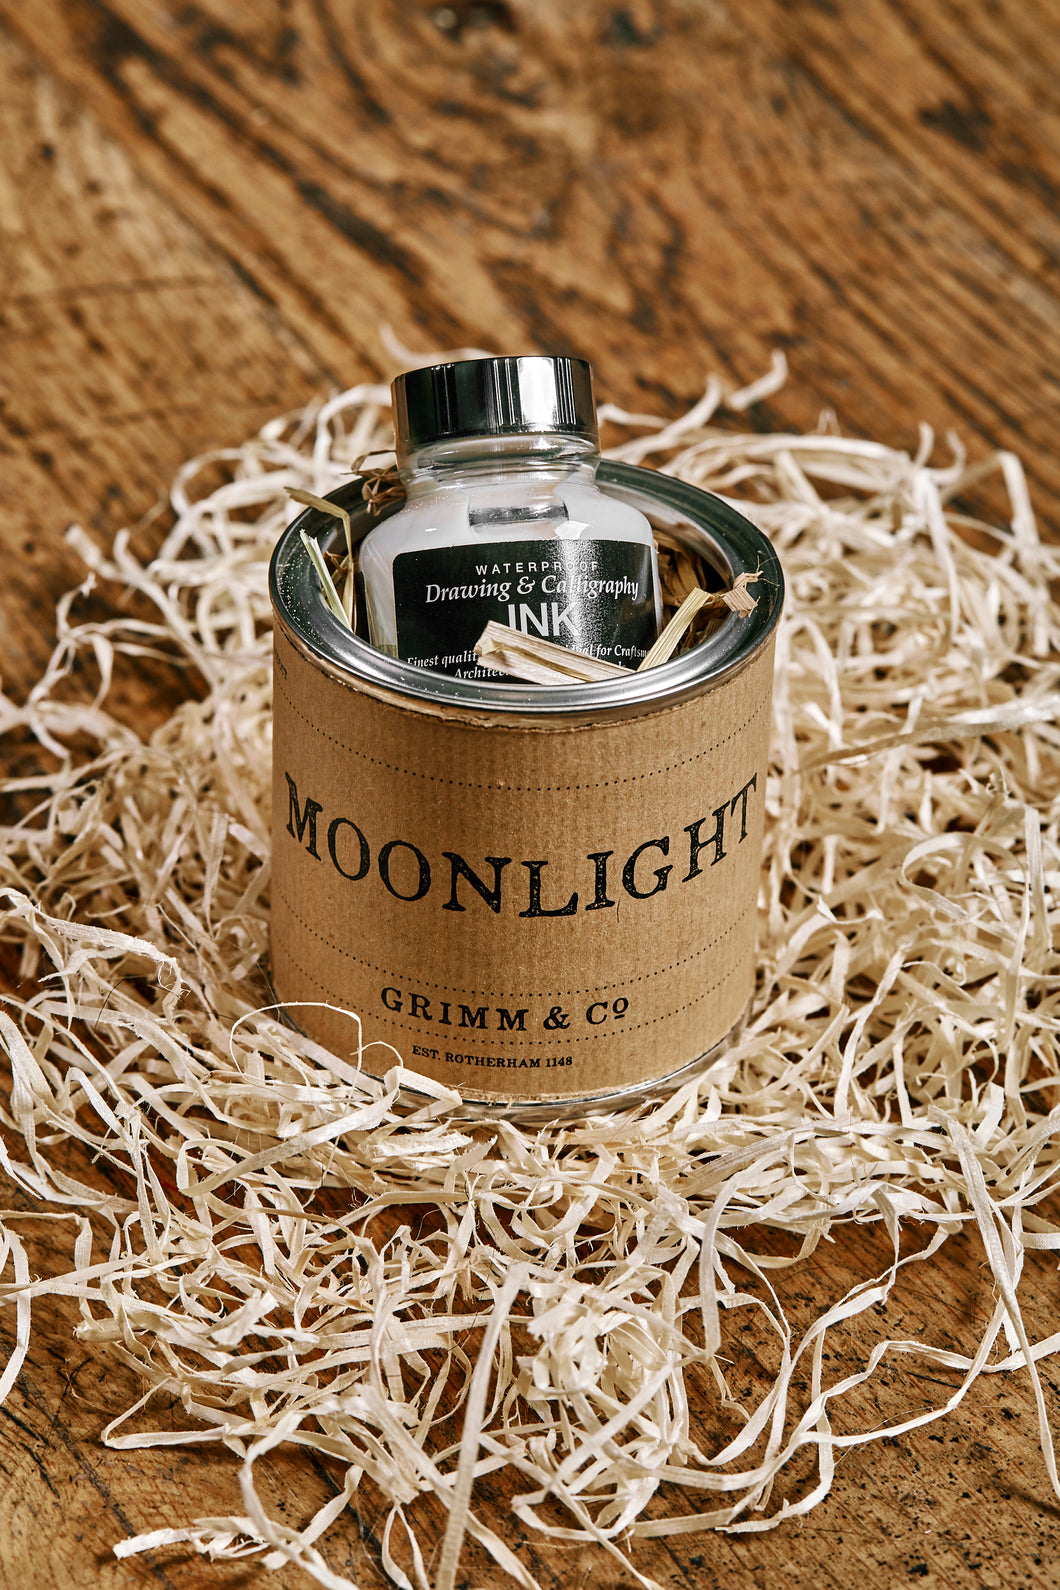 Image of a tin of Moonlight. A silver drawing or writing ink nestled in wood wool inside the tin and wrapped with a kraft paper label.